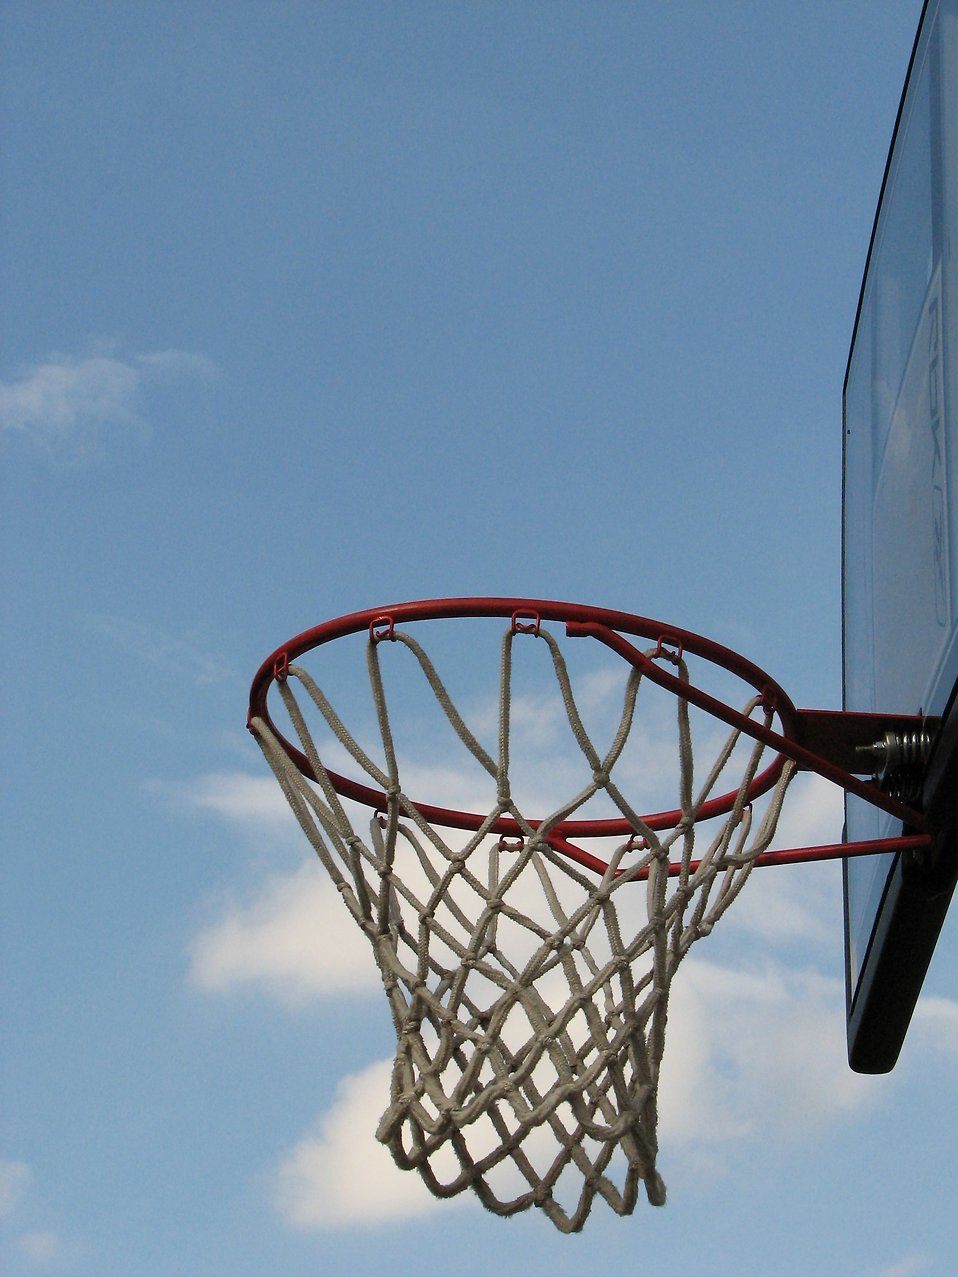 An outdoor basketball hoop with a blue sky background.